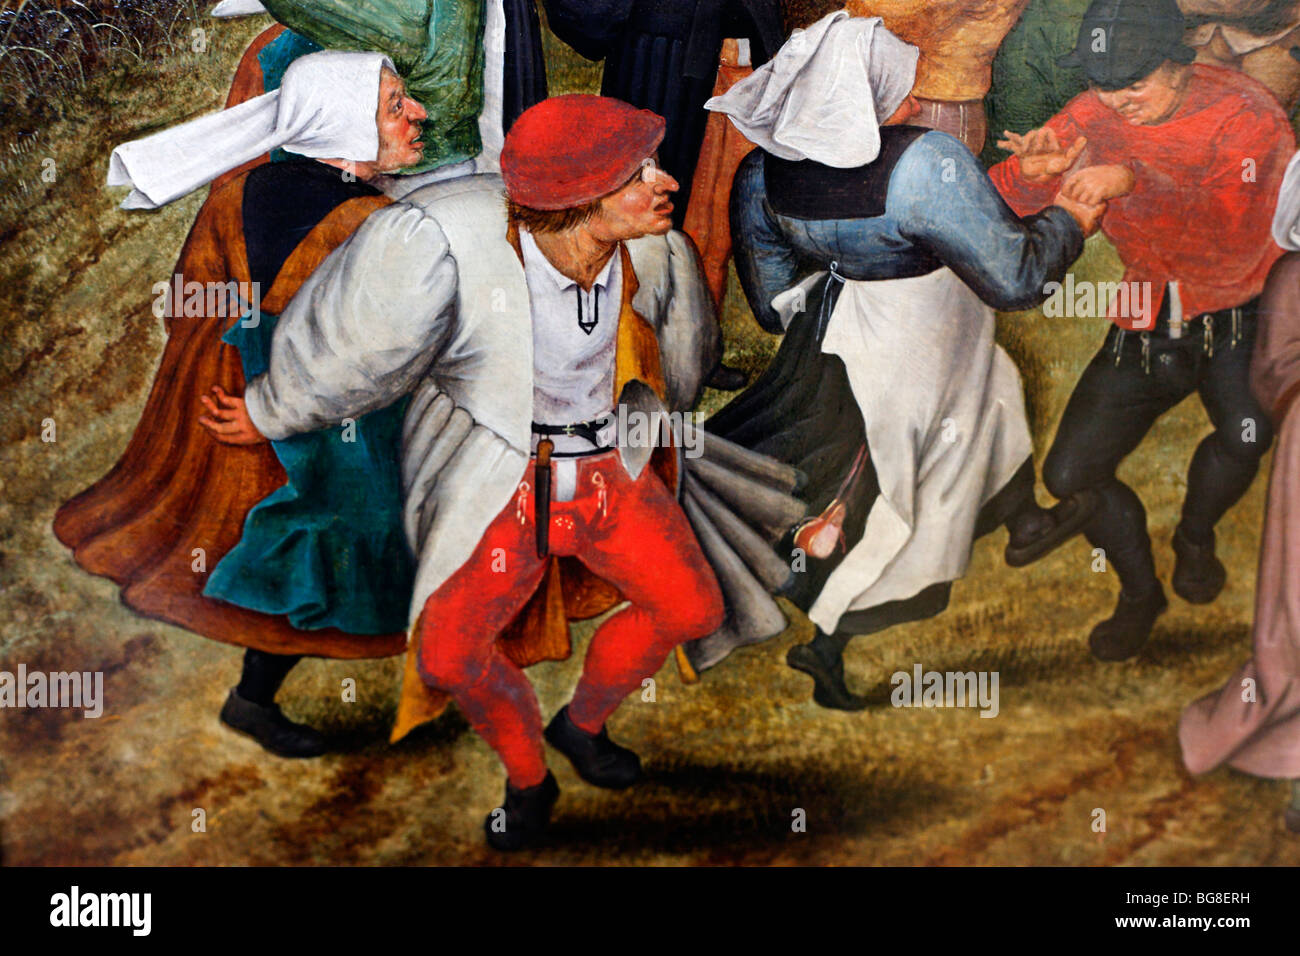 Brueghel Pieter The Younger Peasant Wedding Dance 1607 Painting In Alte Pinakothek Munich Bavaria Germany